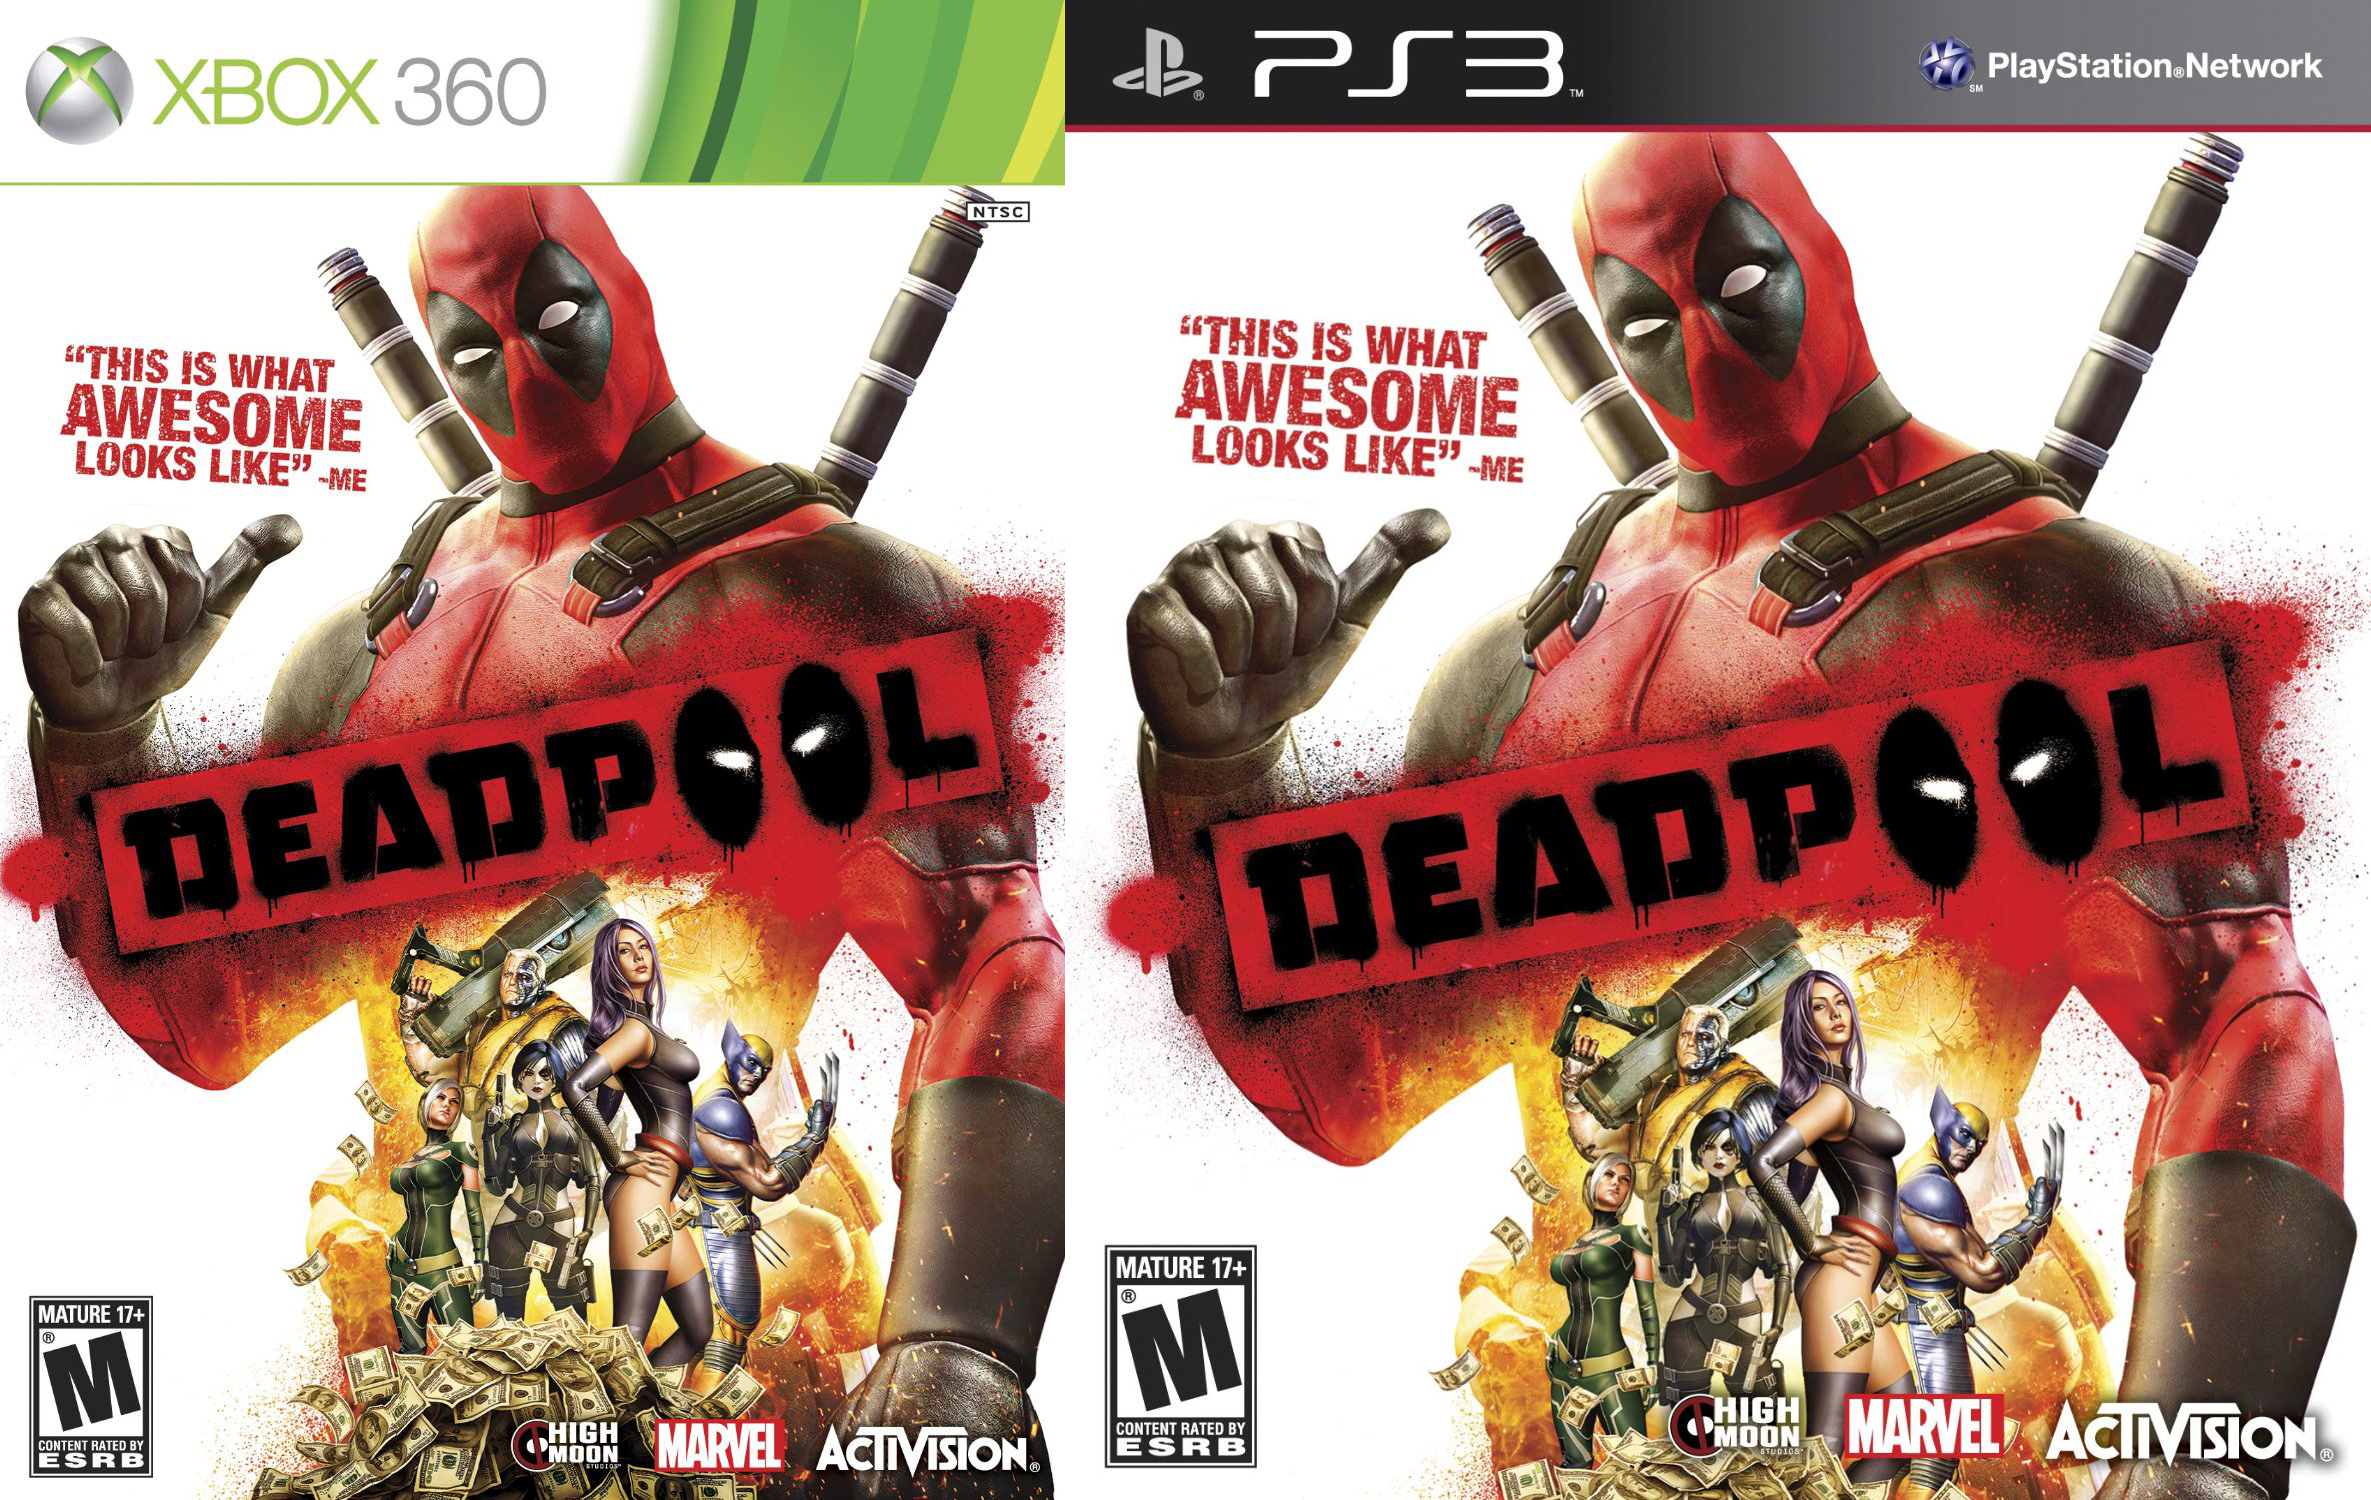 Ps3, Xbox 360 - Deadpool the game